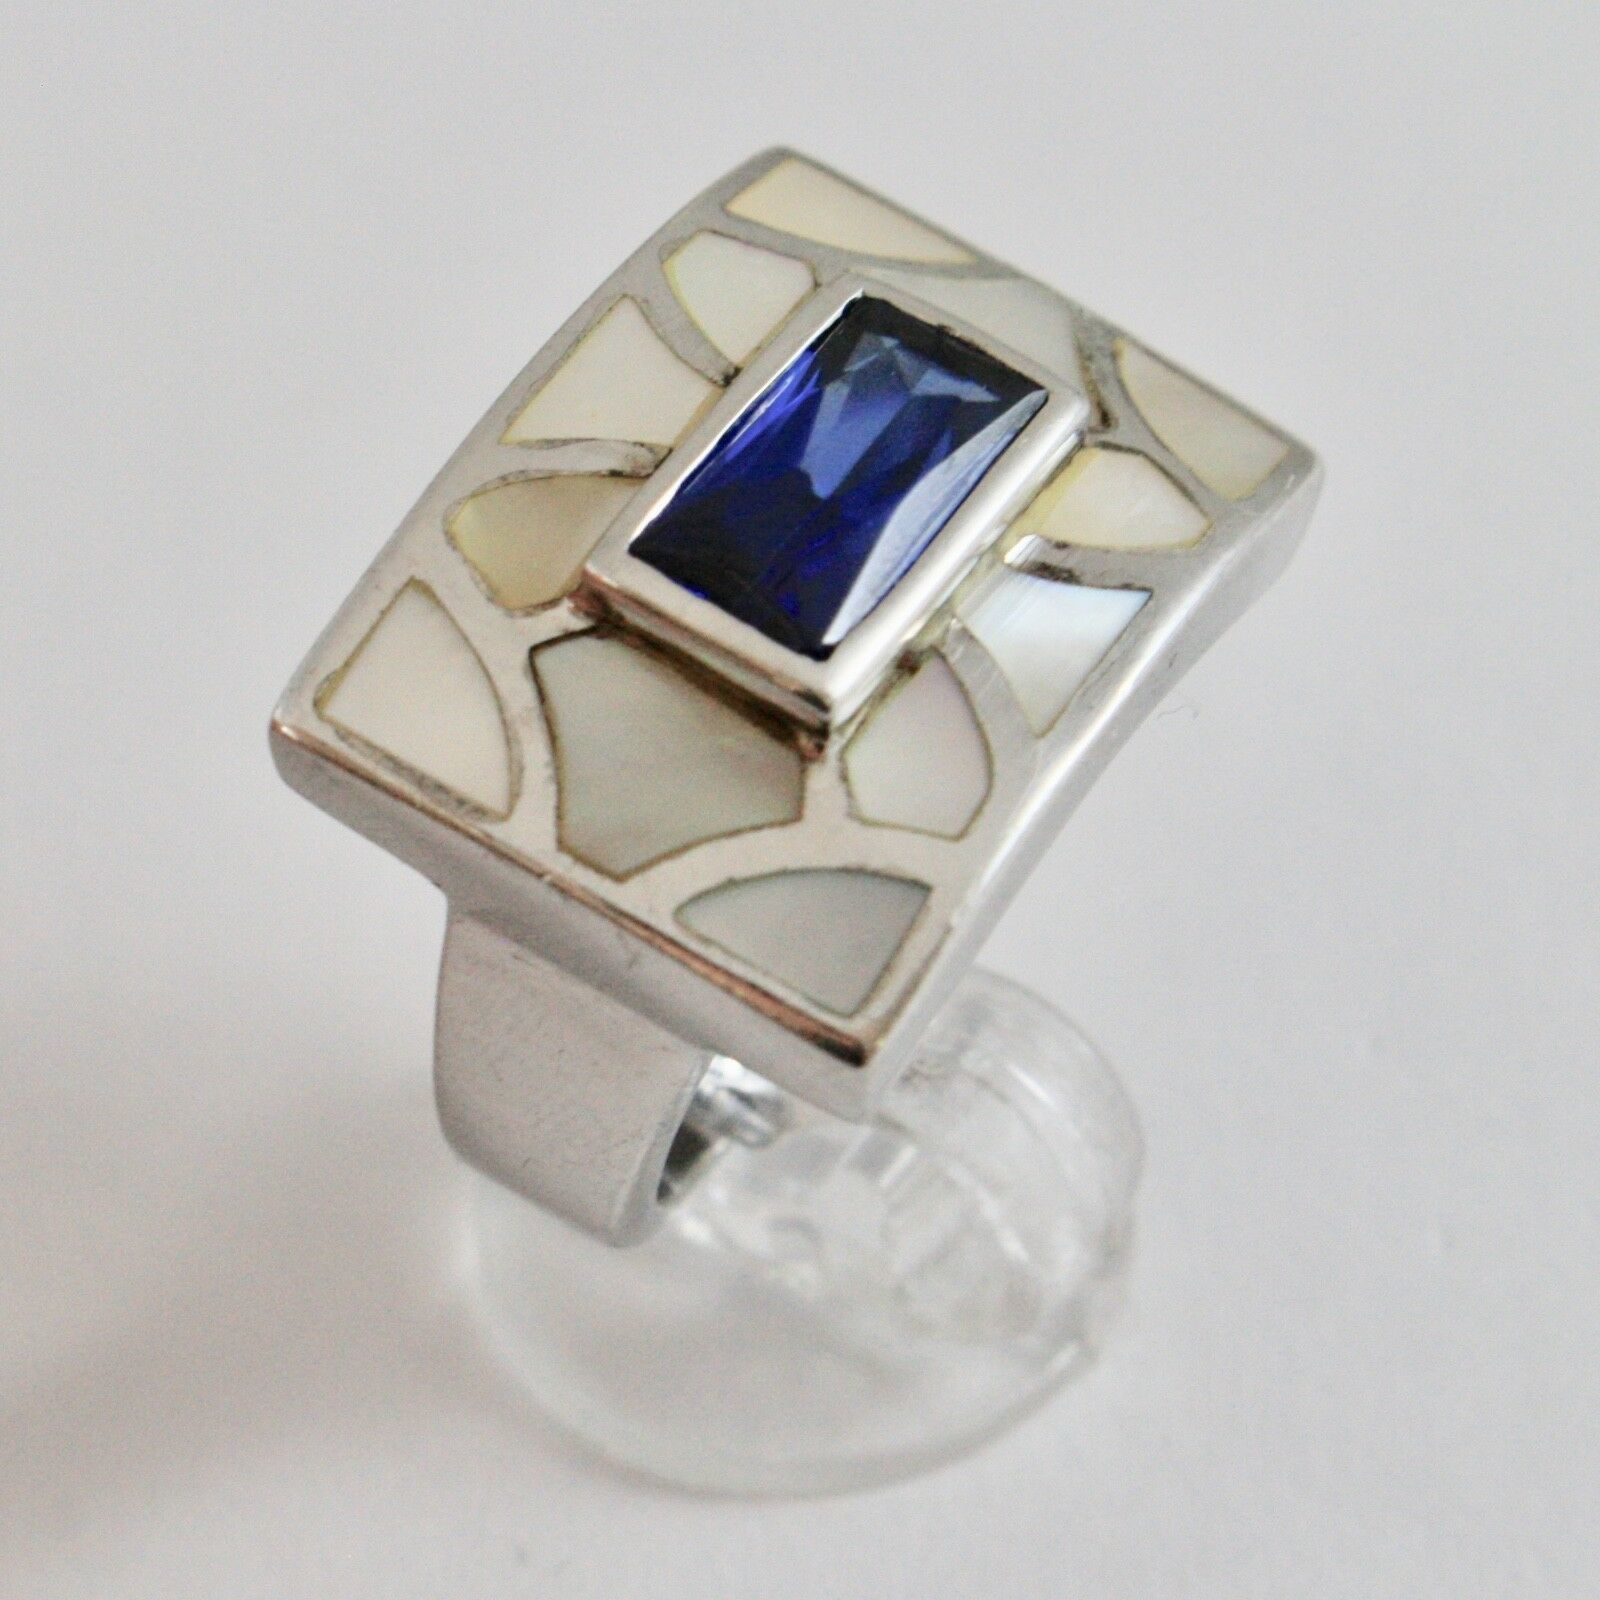 Silver Ring 925 Rhodium with Nacre White and Crystal Blue Rectangular